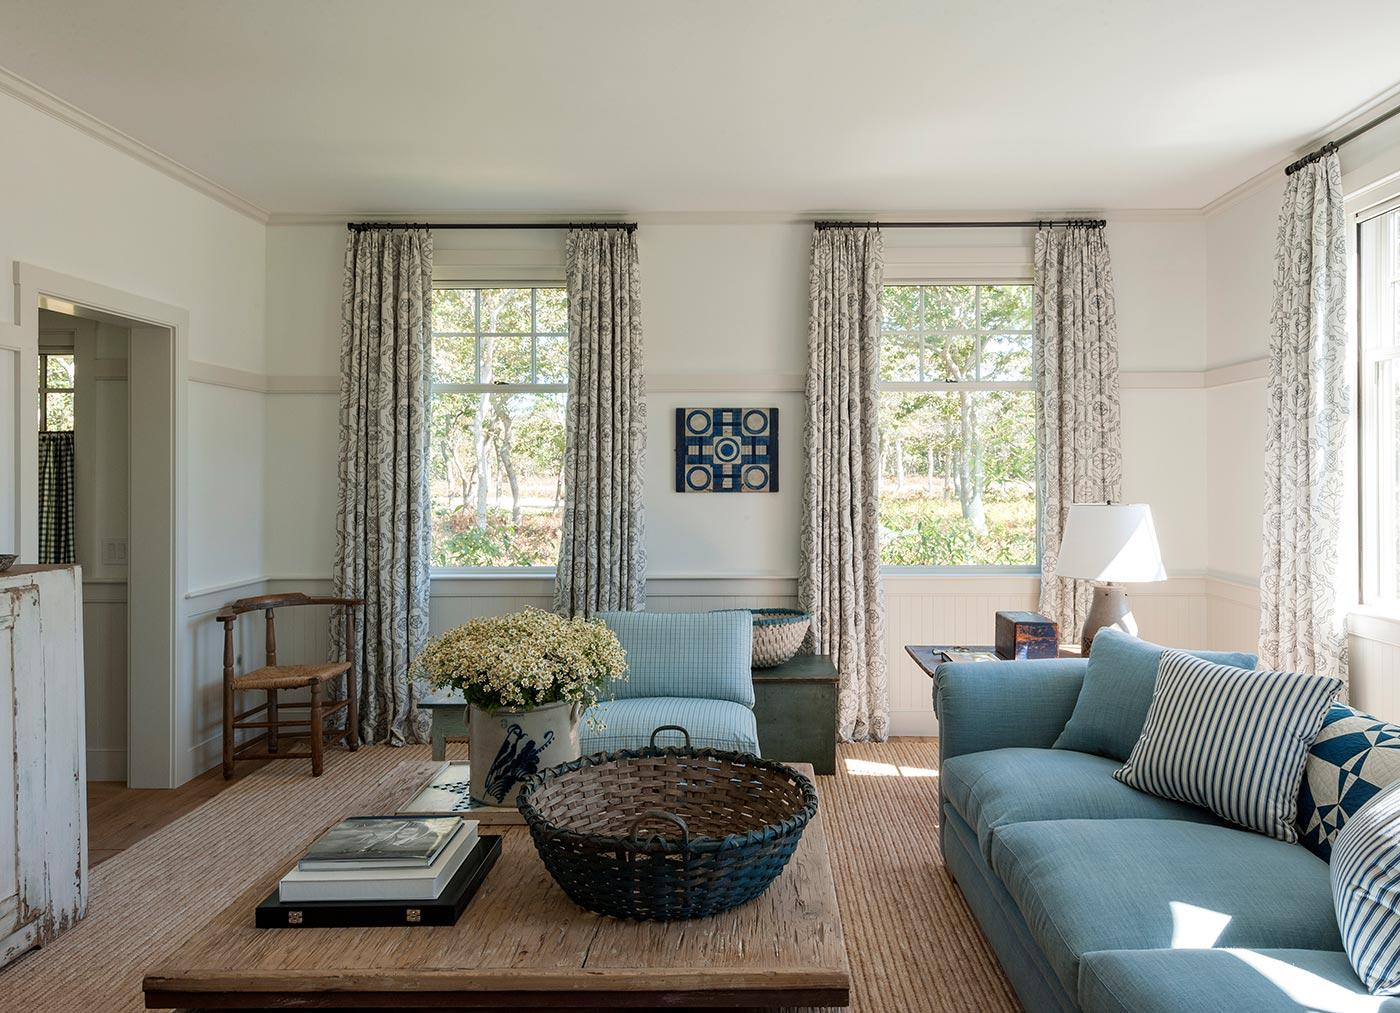 Décor Inspiration: A Stunning Summer Getaway on Martha's Vineyard Decorated by Mark Cunningham